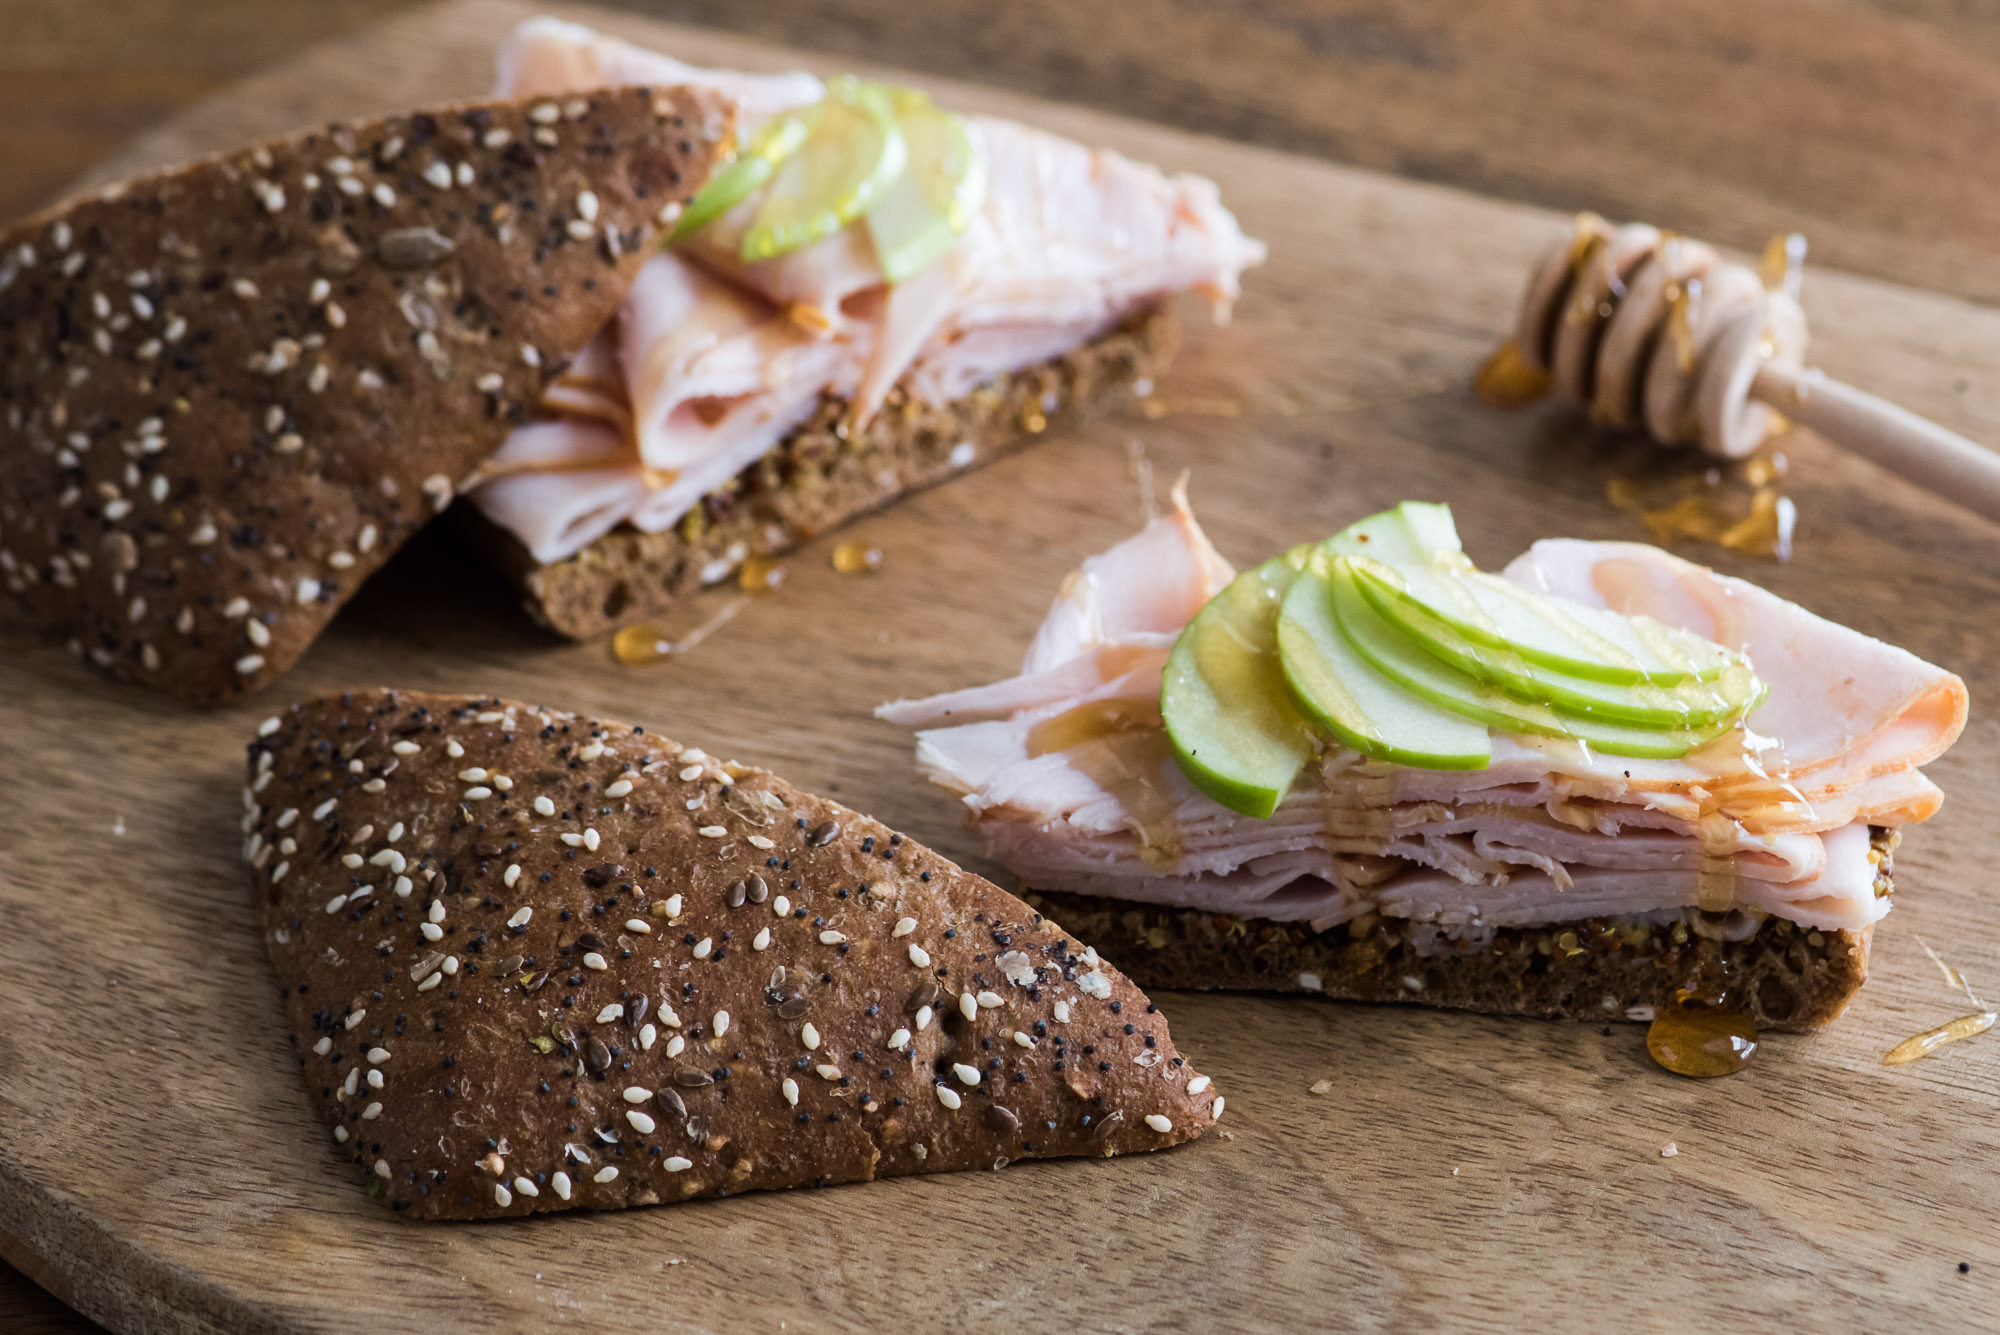 4x4 Sliced Multigrain Sandwich Roll Turkey Apple Sandwich-001-cropped.jpg